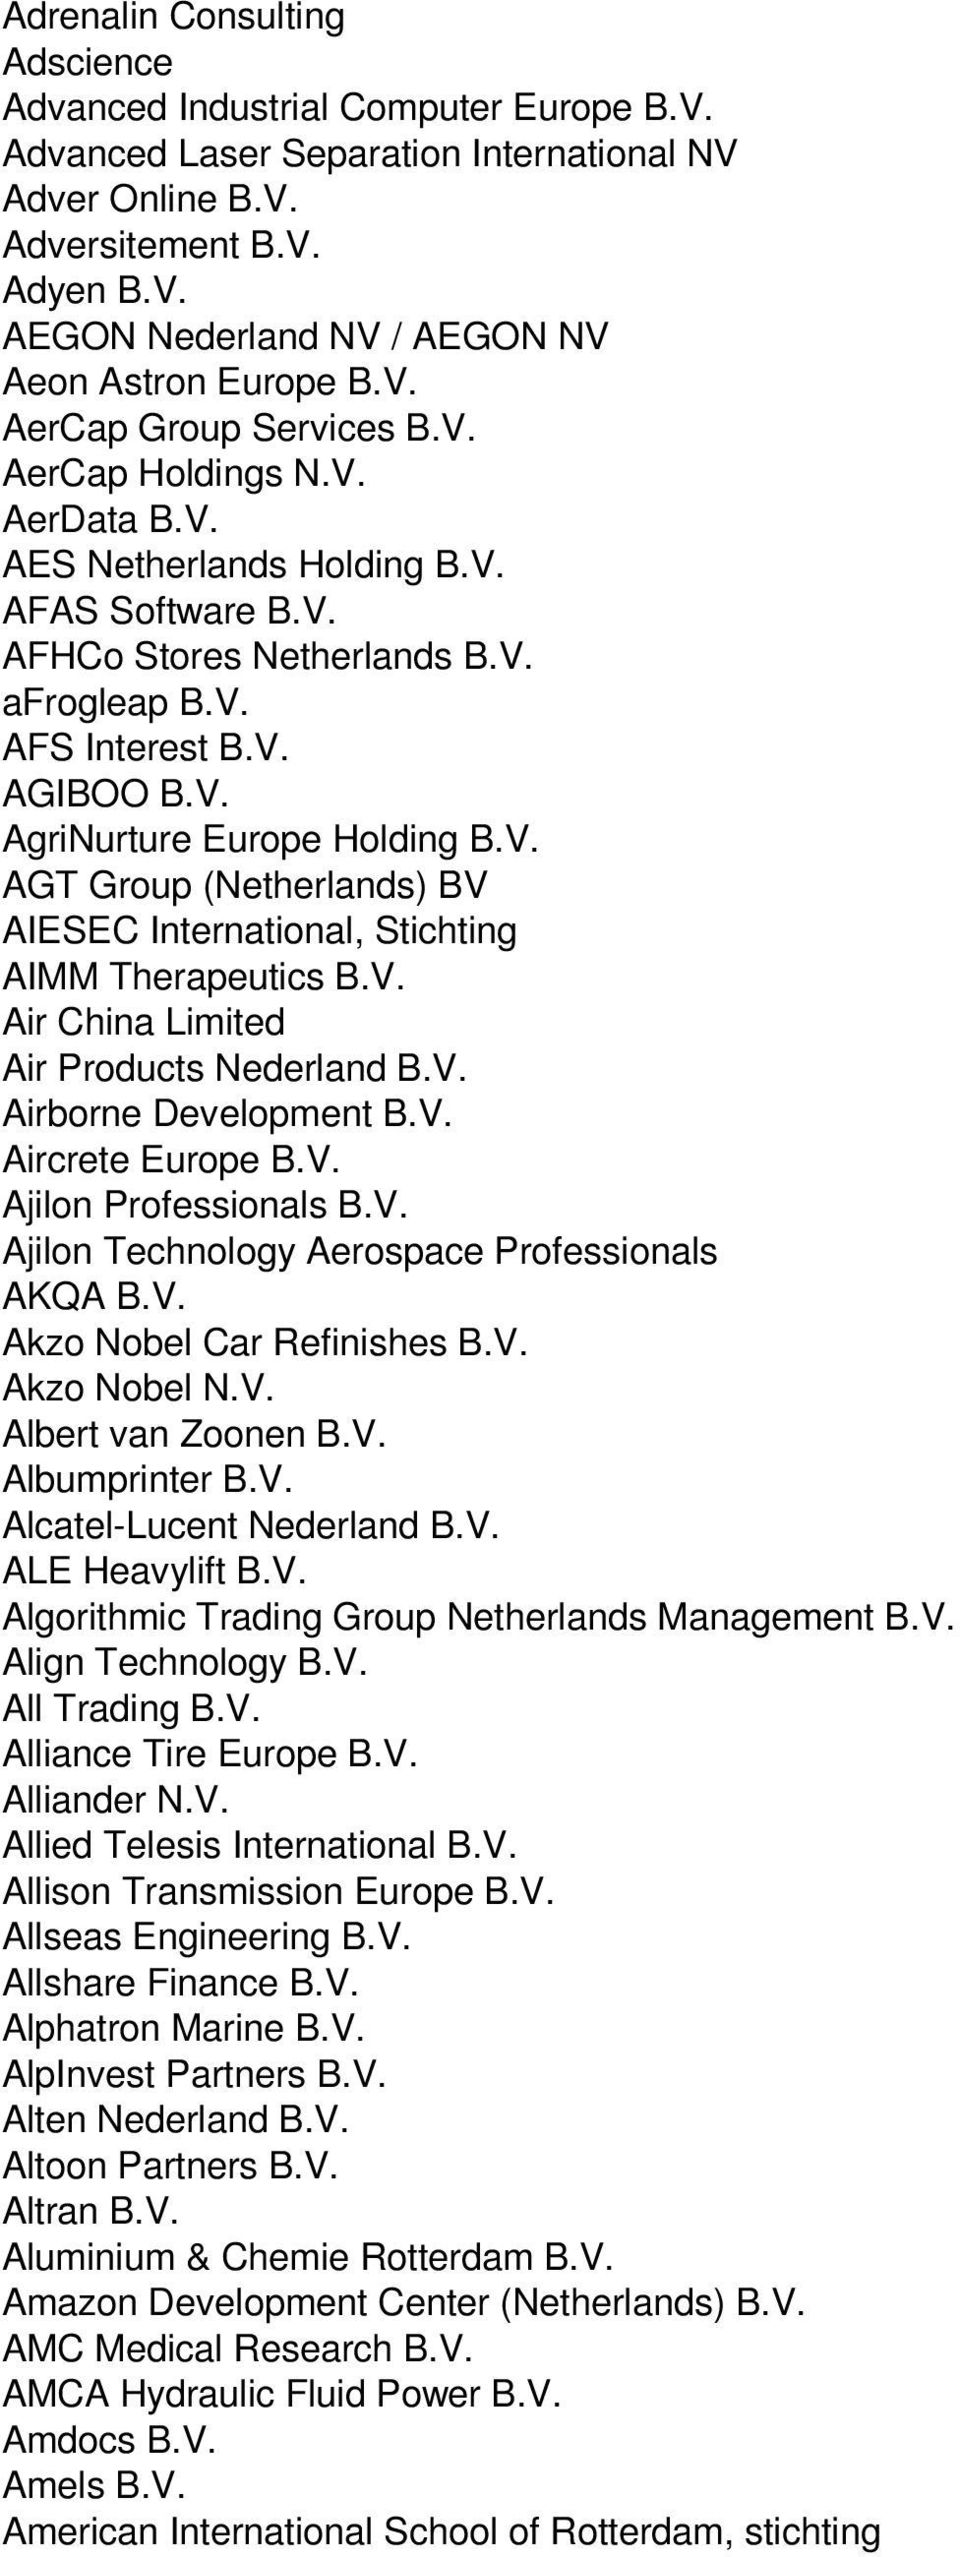 V. AGT Group (Netherlands) BV AIESEC International, Stichting AIMM Therapeutics B.V. Air China Limited Air Products Nederland B.V. Airborne Development B.V. Aircrete Europe B.V. Ajilon Professionals B.